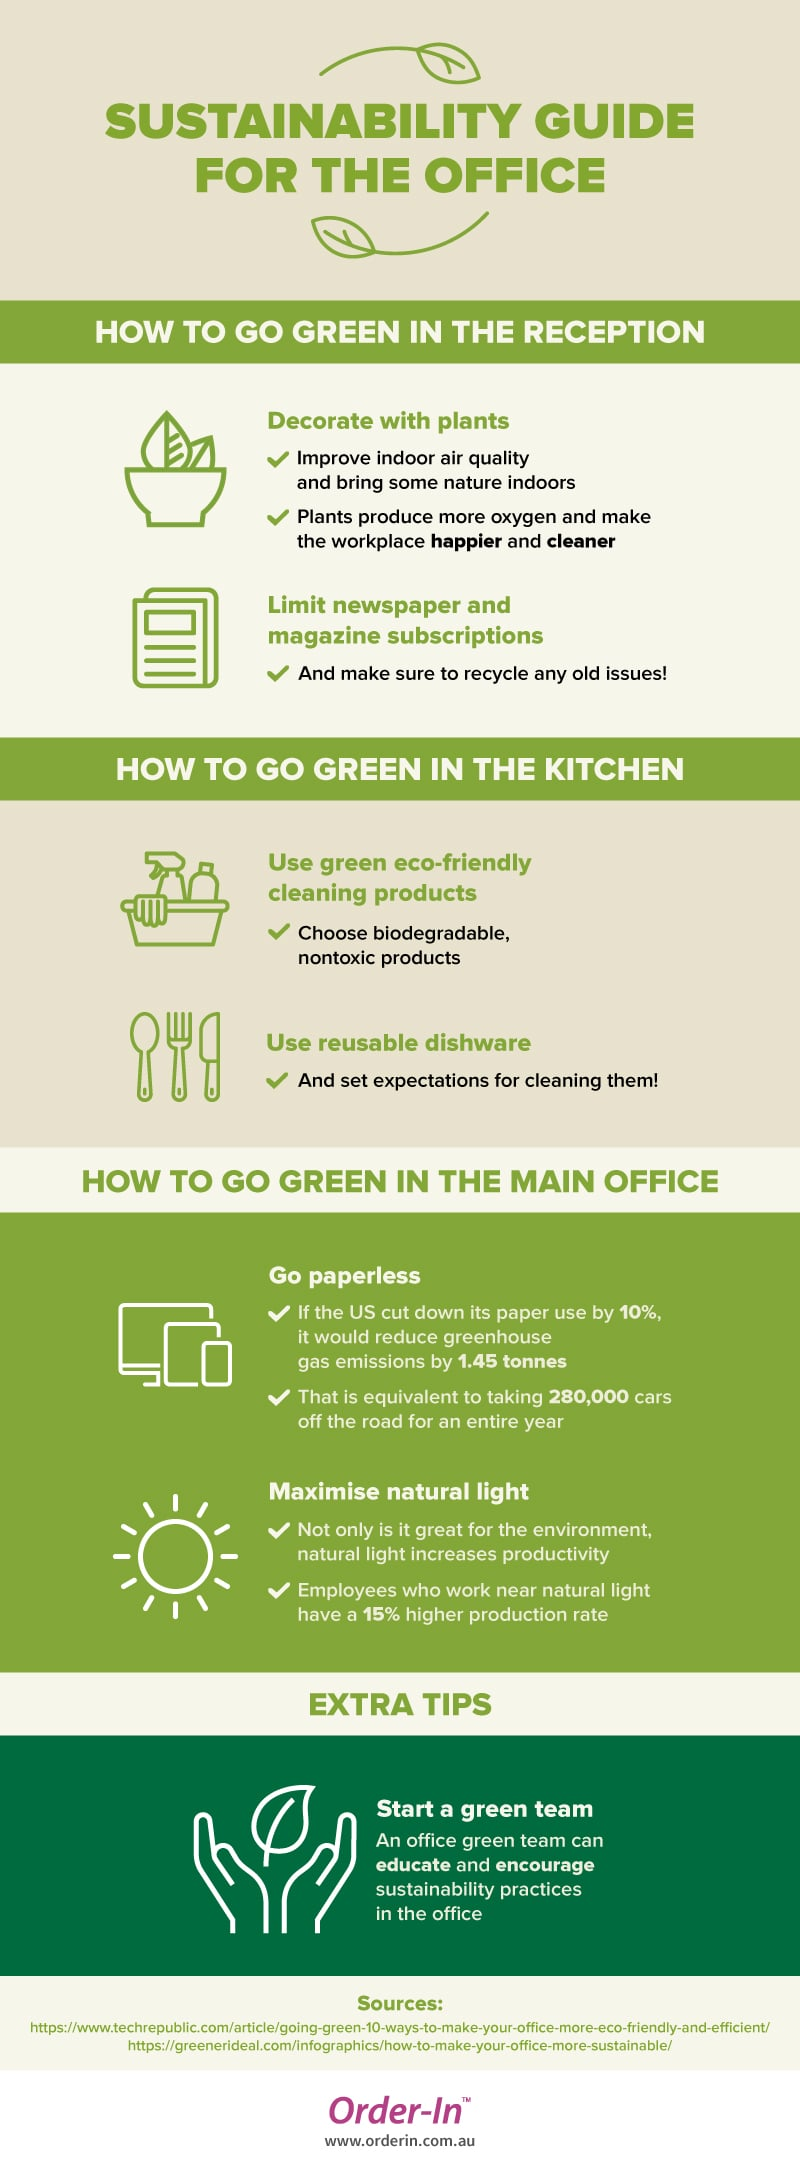 Sustainability tips and guide for the office infographic